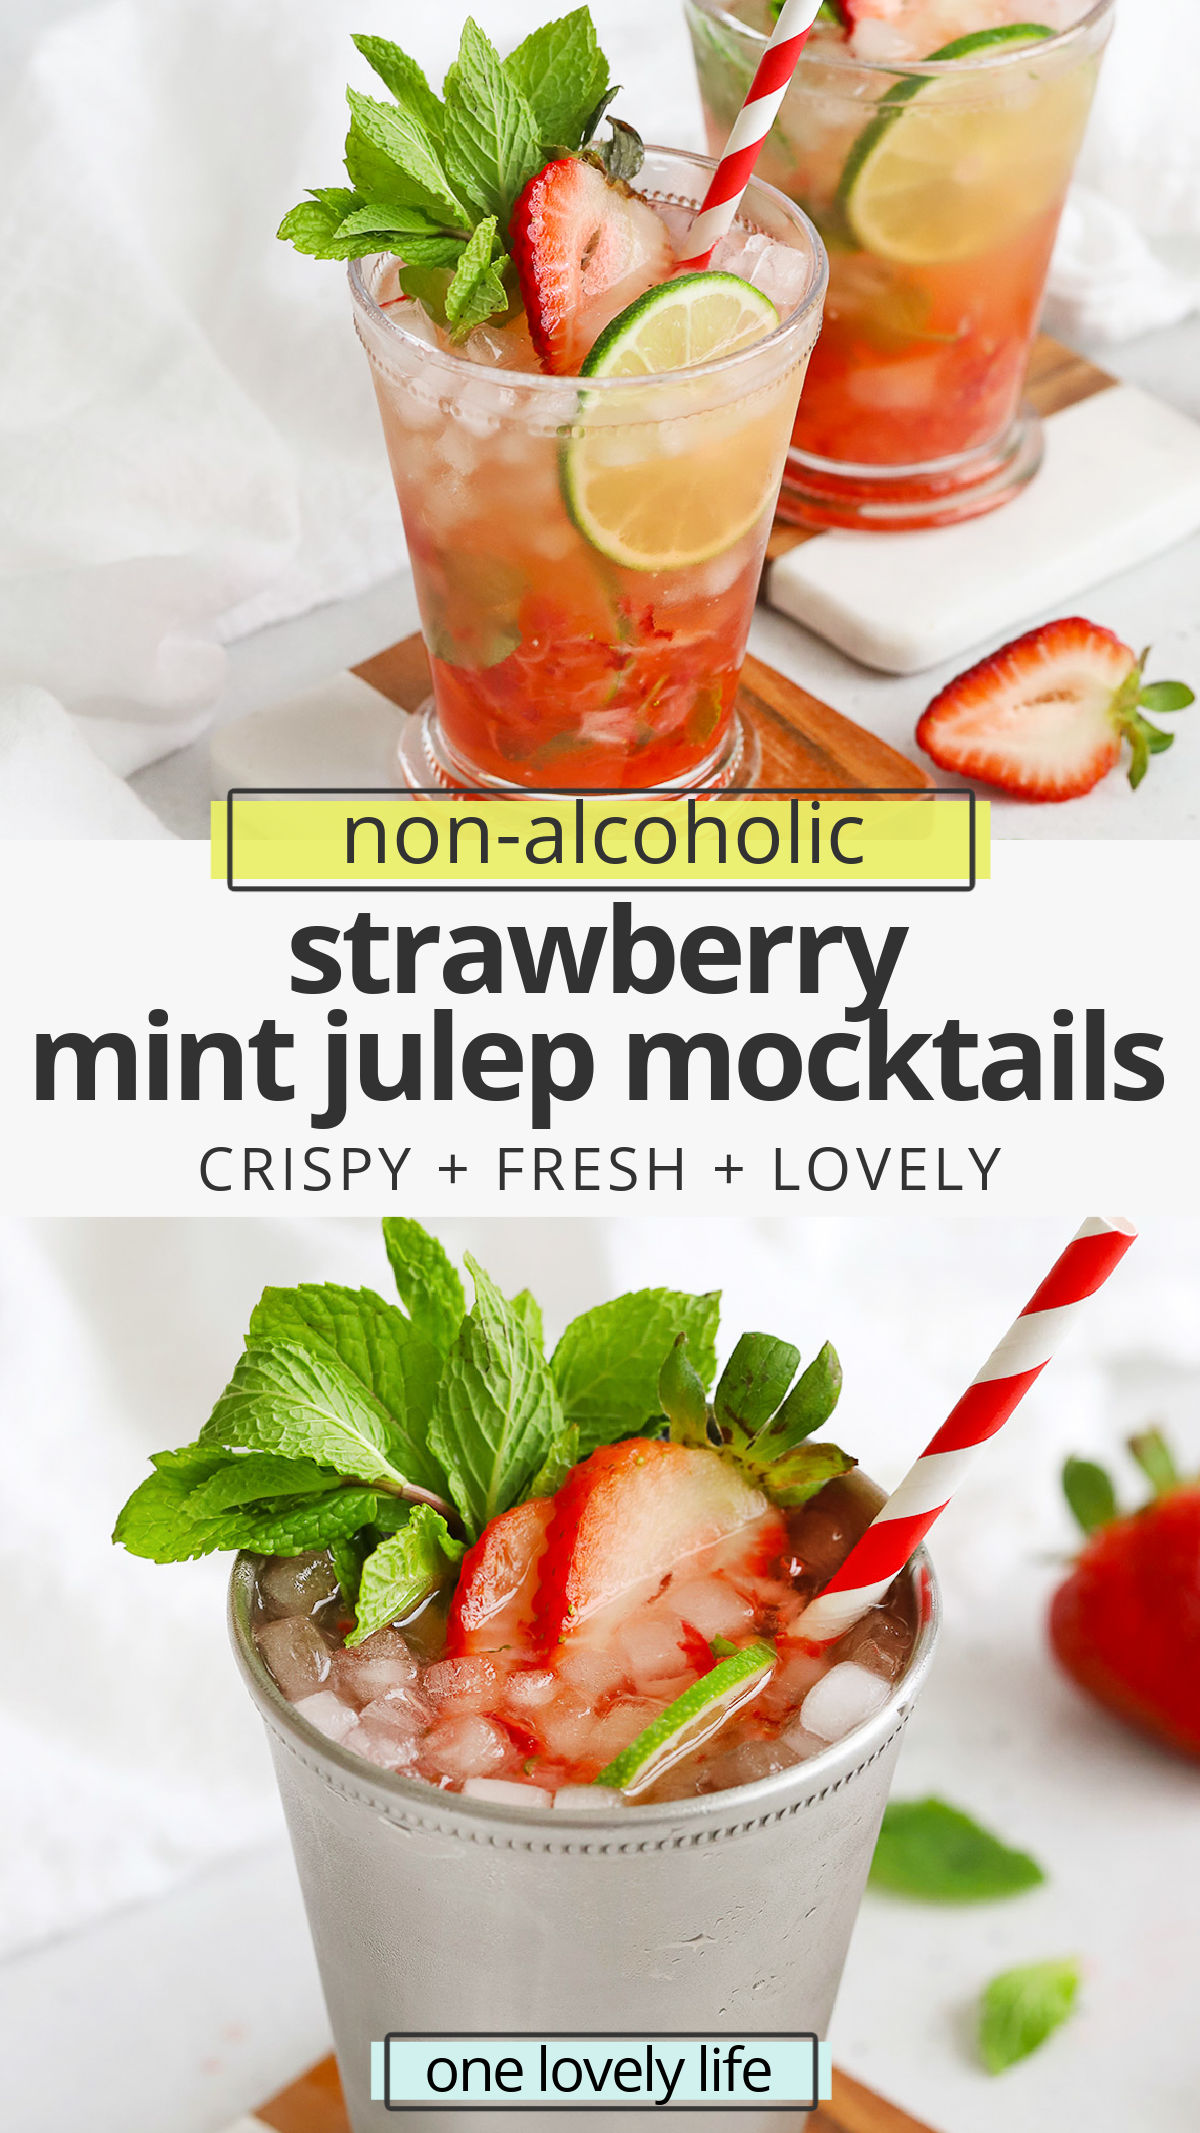 These Virgin Strawberry Mint Juleps are great for a Kentucky Derby party with kids or make the perfect drink for a casual summer barbecue. Mint Julep Mocktails // Strawberry Mint Julep // Disneyland Mint Julep // Disney Mint Julep // Non-alcholic Mint Julep #julep #mintjulep #mocktail #nonalcoholic